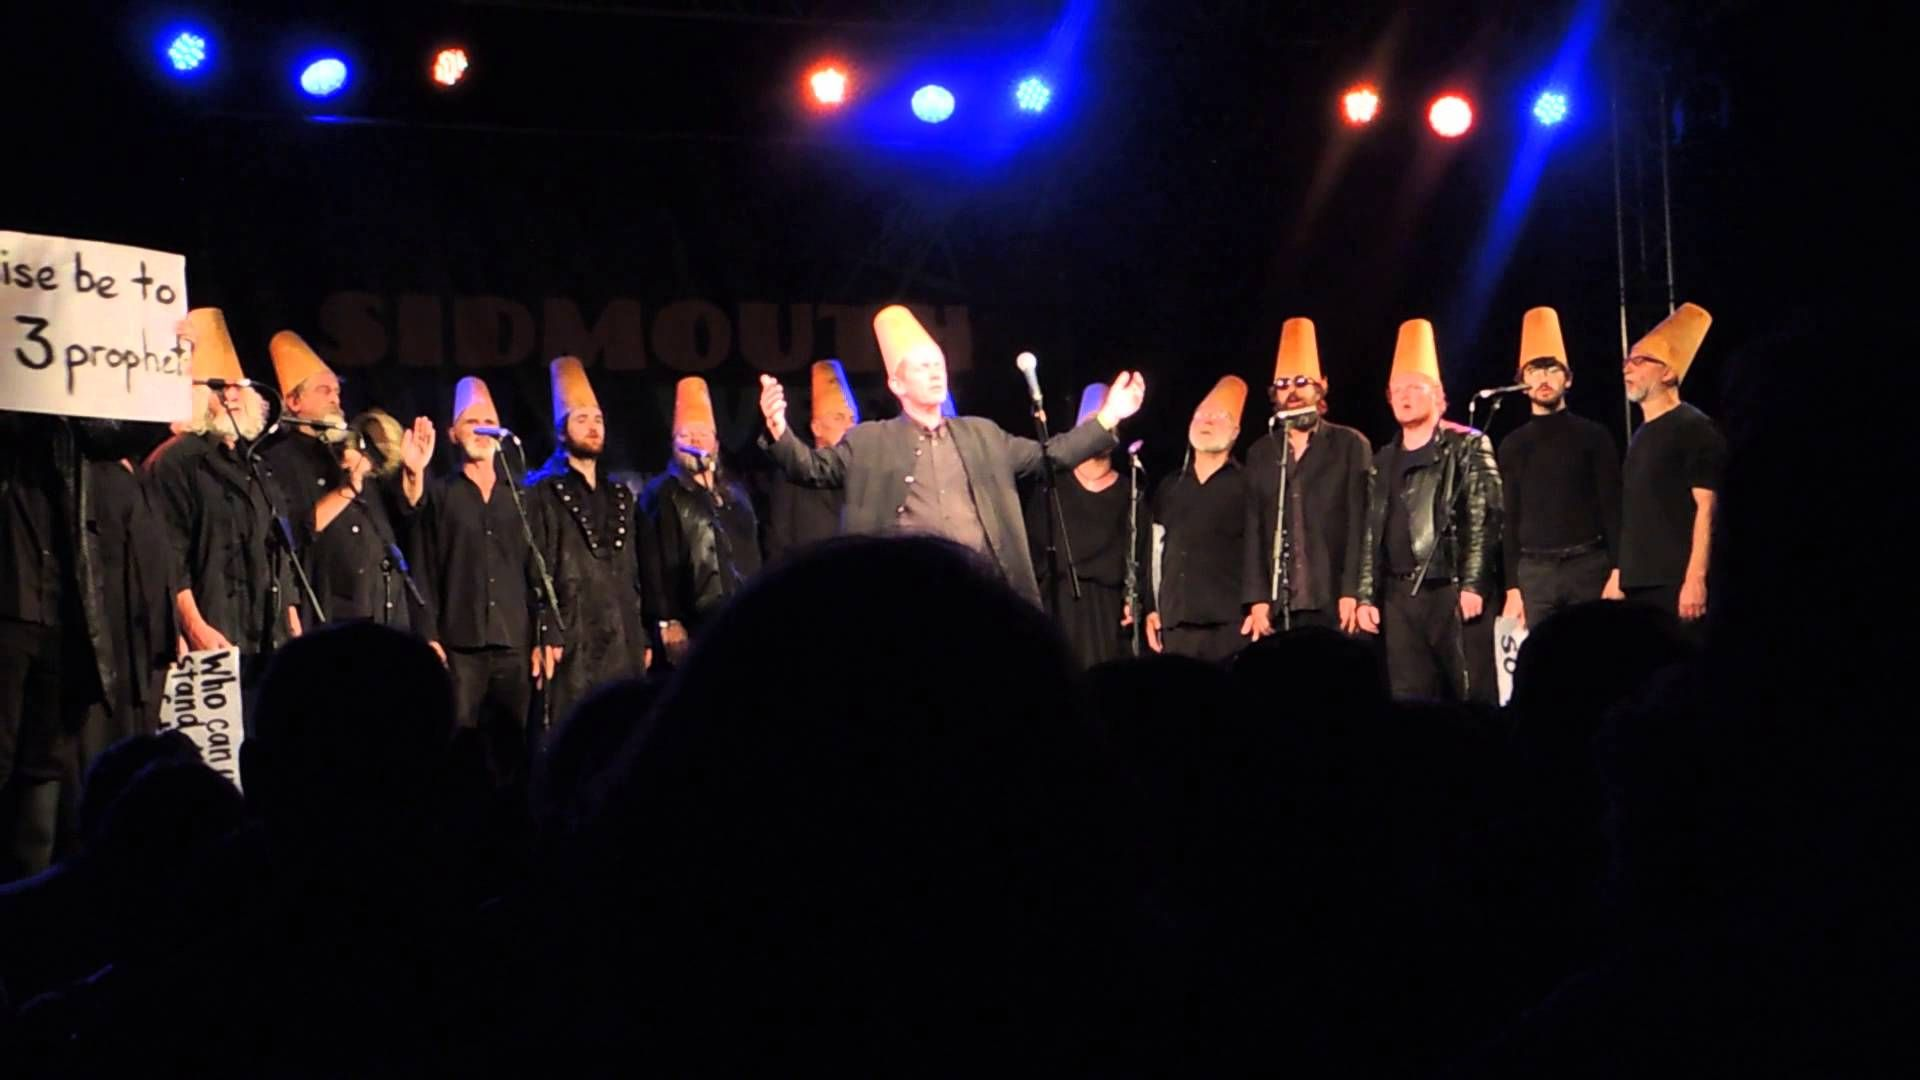 2 Funny ! ;-) Spooky Men's Chorale sing Ba'hari Ghibb (described as a 13th century Sufi prophecy.)